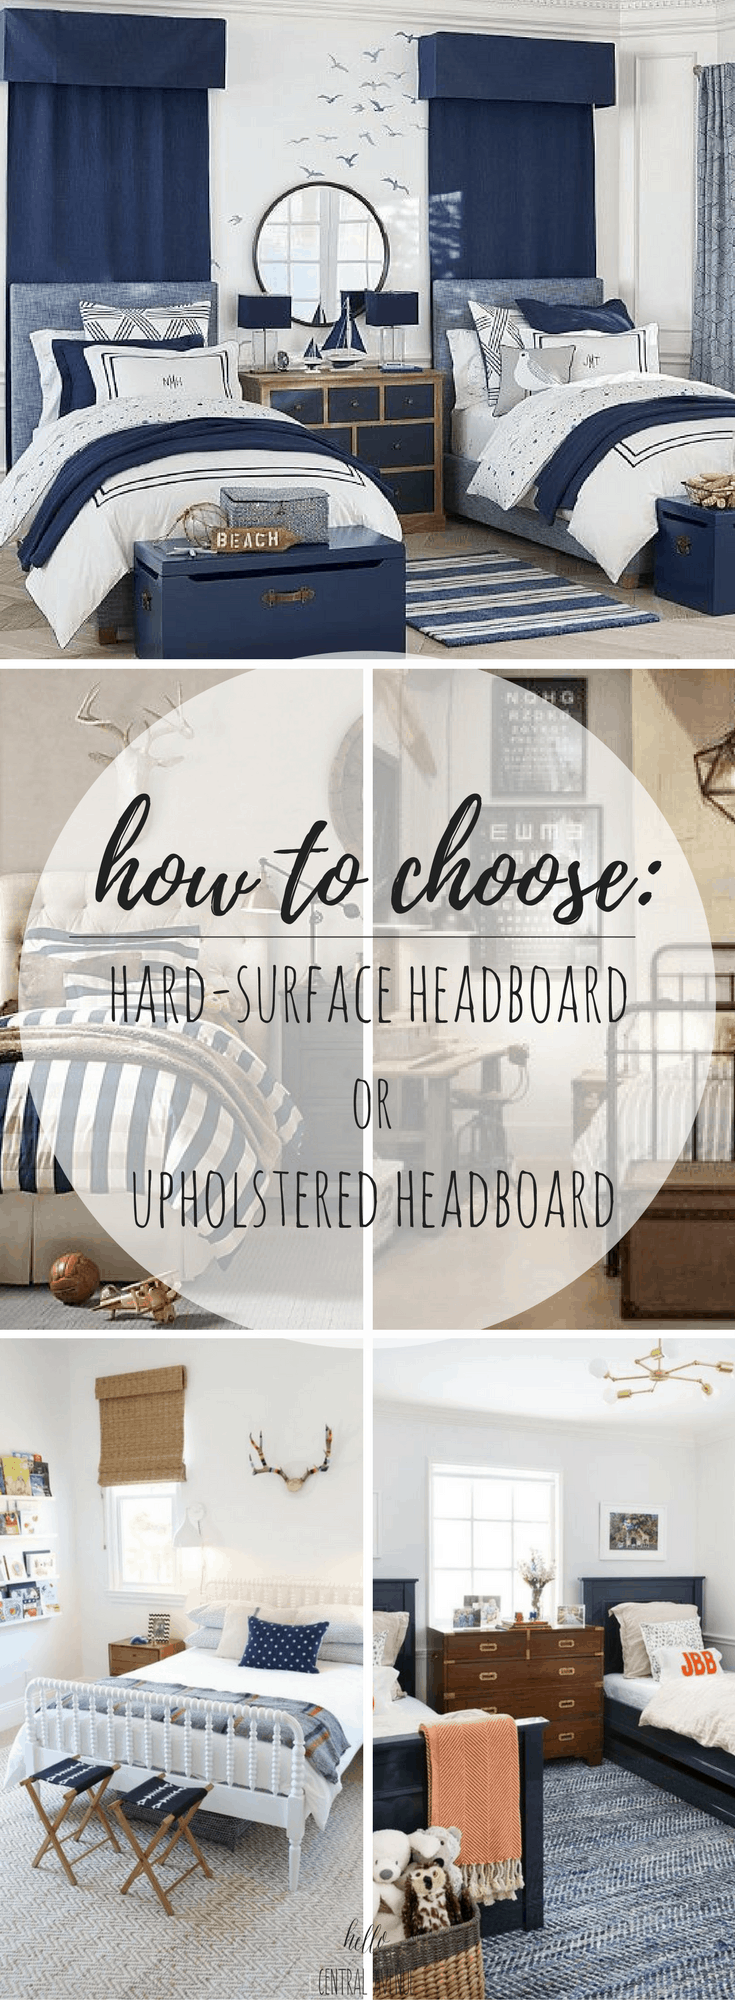 How To Choose Hard Surface Headboard Or Upholstered Headboard Hello Central Avenue